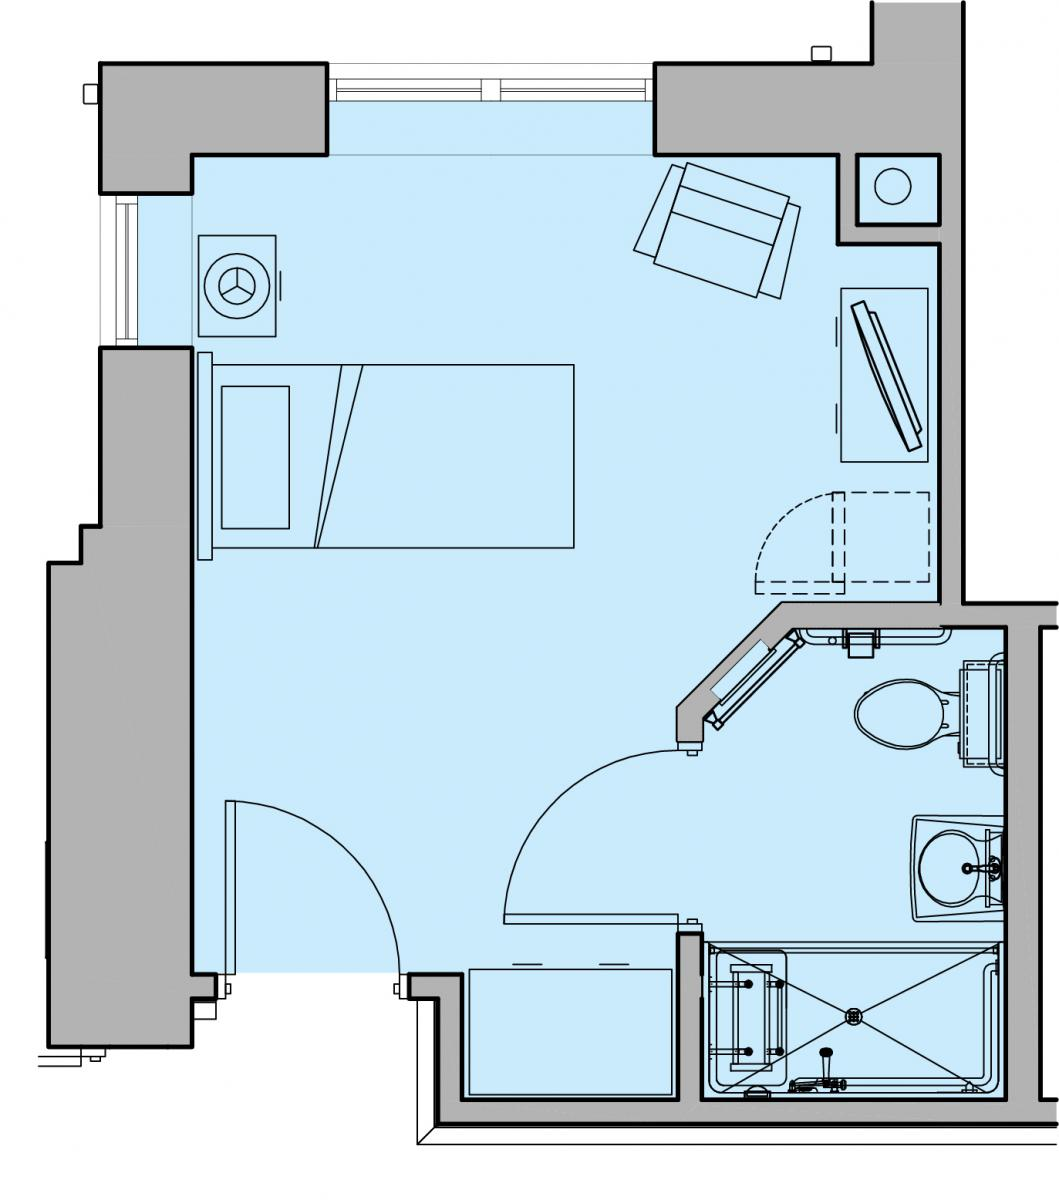 The Hummingbird Floor Plan